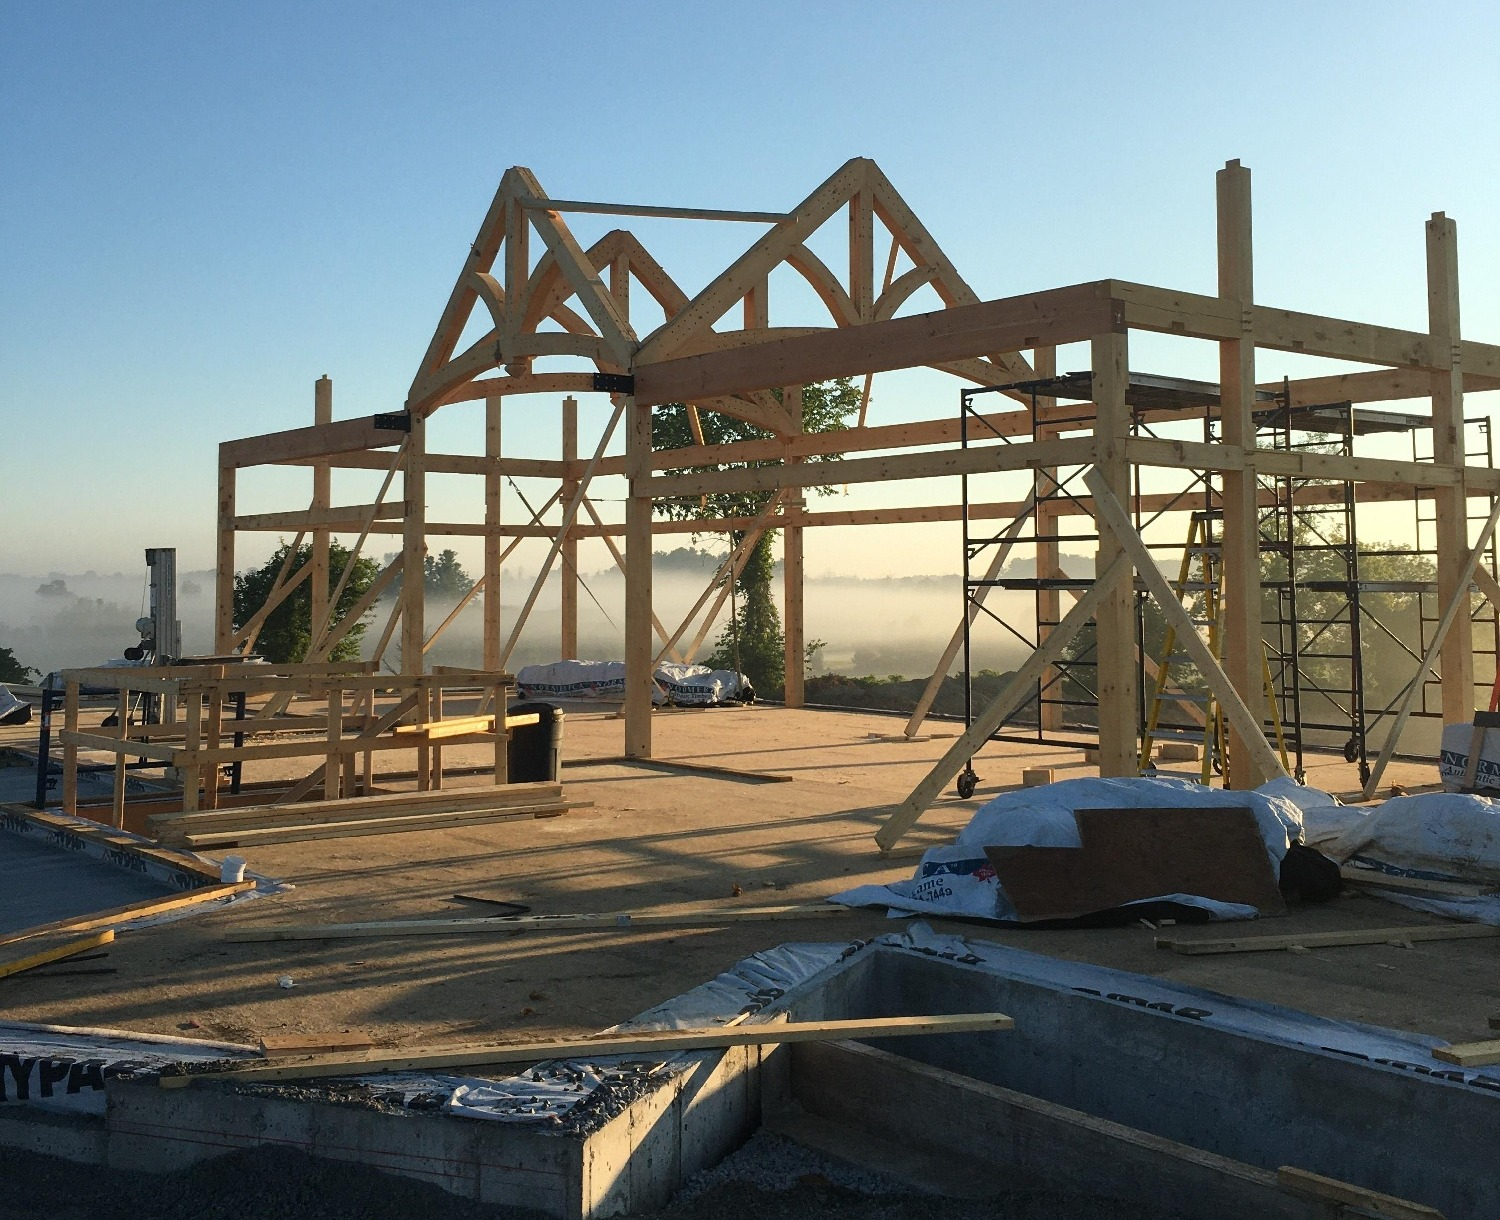 Construction Loan Normerica Timber Frame Homes New Construction Photos Morning View